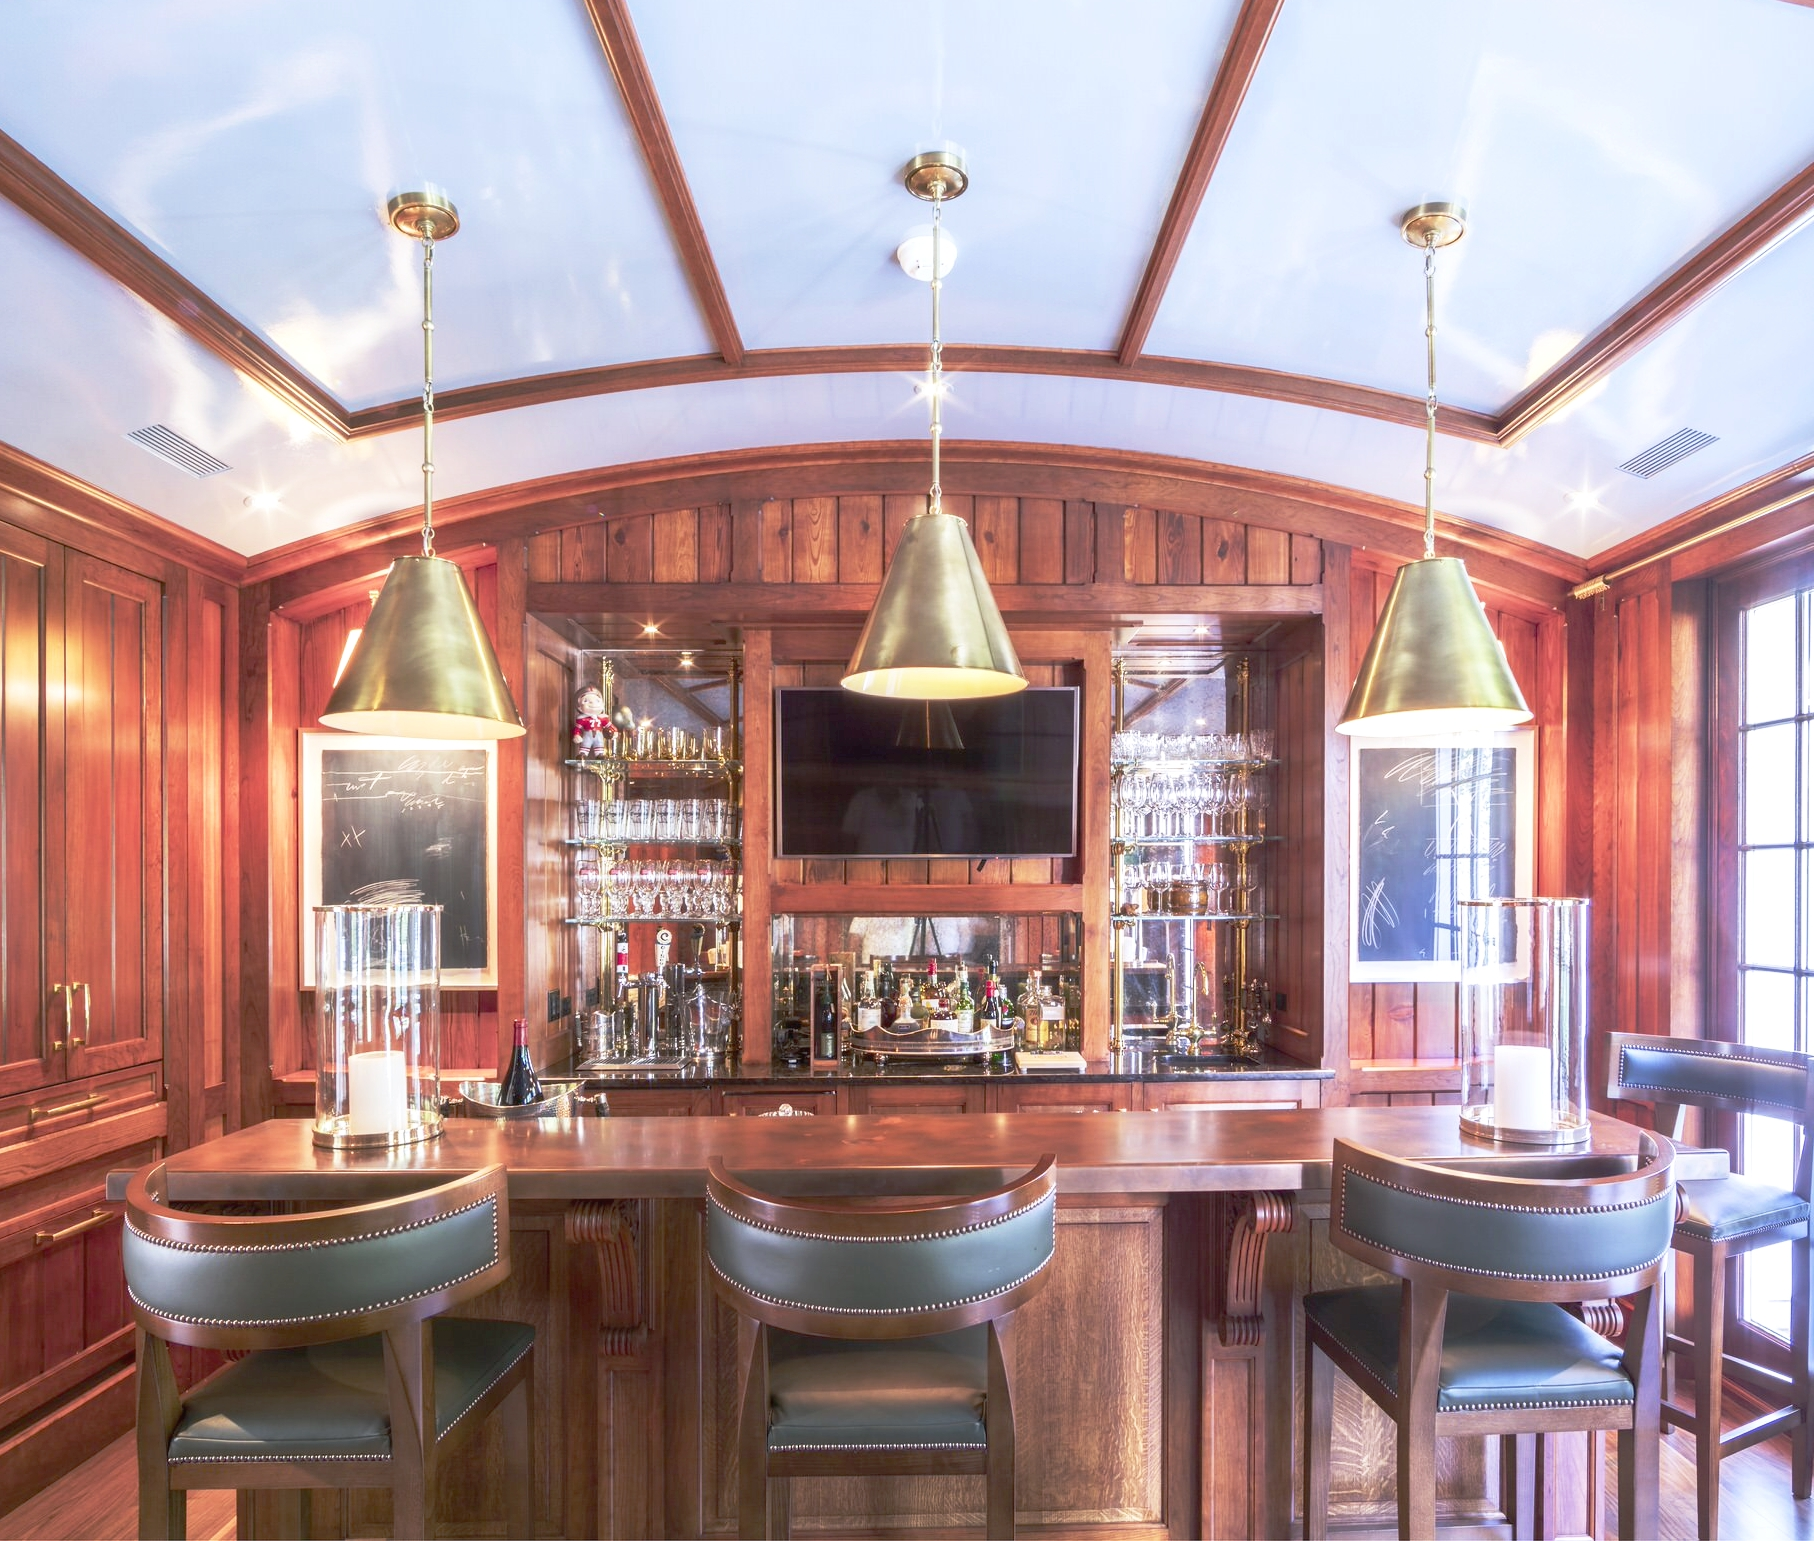 The gameroom bar using antique hardwoods from Virginia; built by Gaston & Wyatt—designed for Hamady Architects